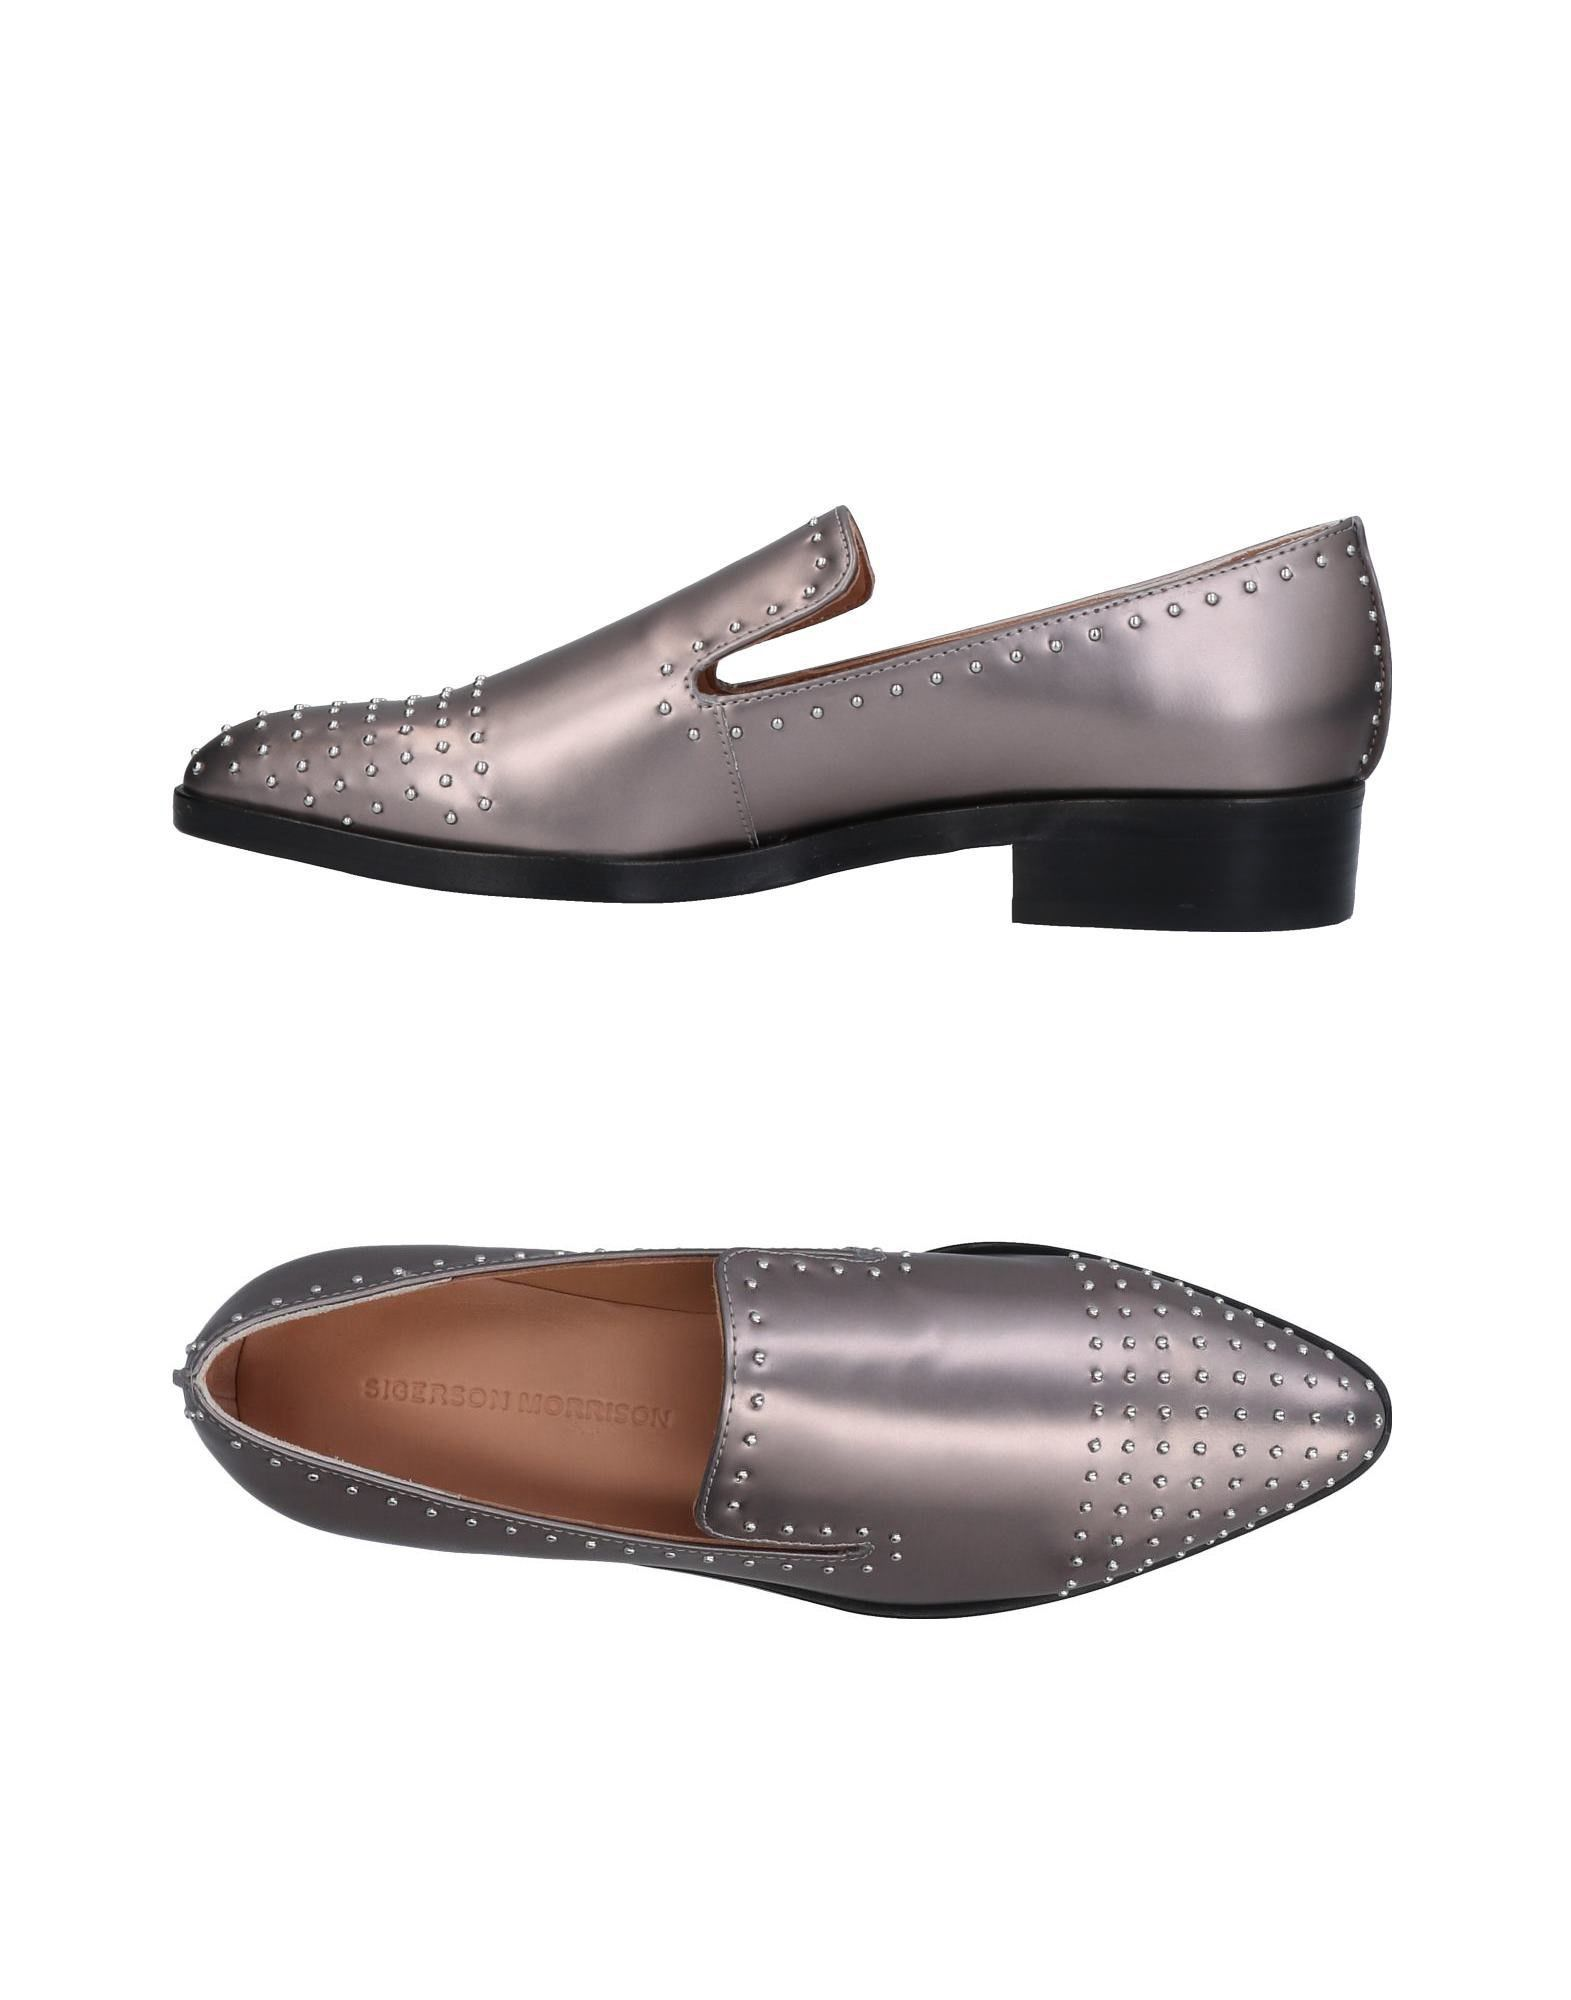 Sigerson Morrison Loafers Loafers - Women Sigerson Morrison Loafers Loafers online on  Australia - 11452729EI 3d45e8